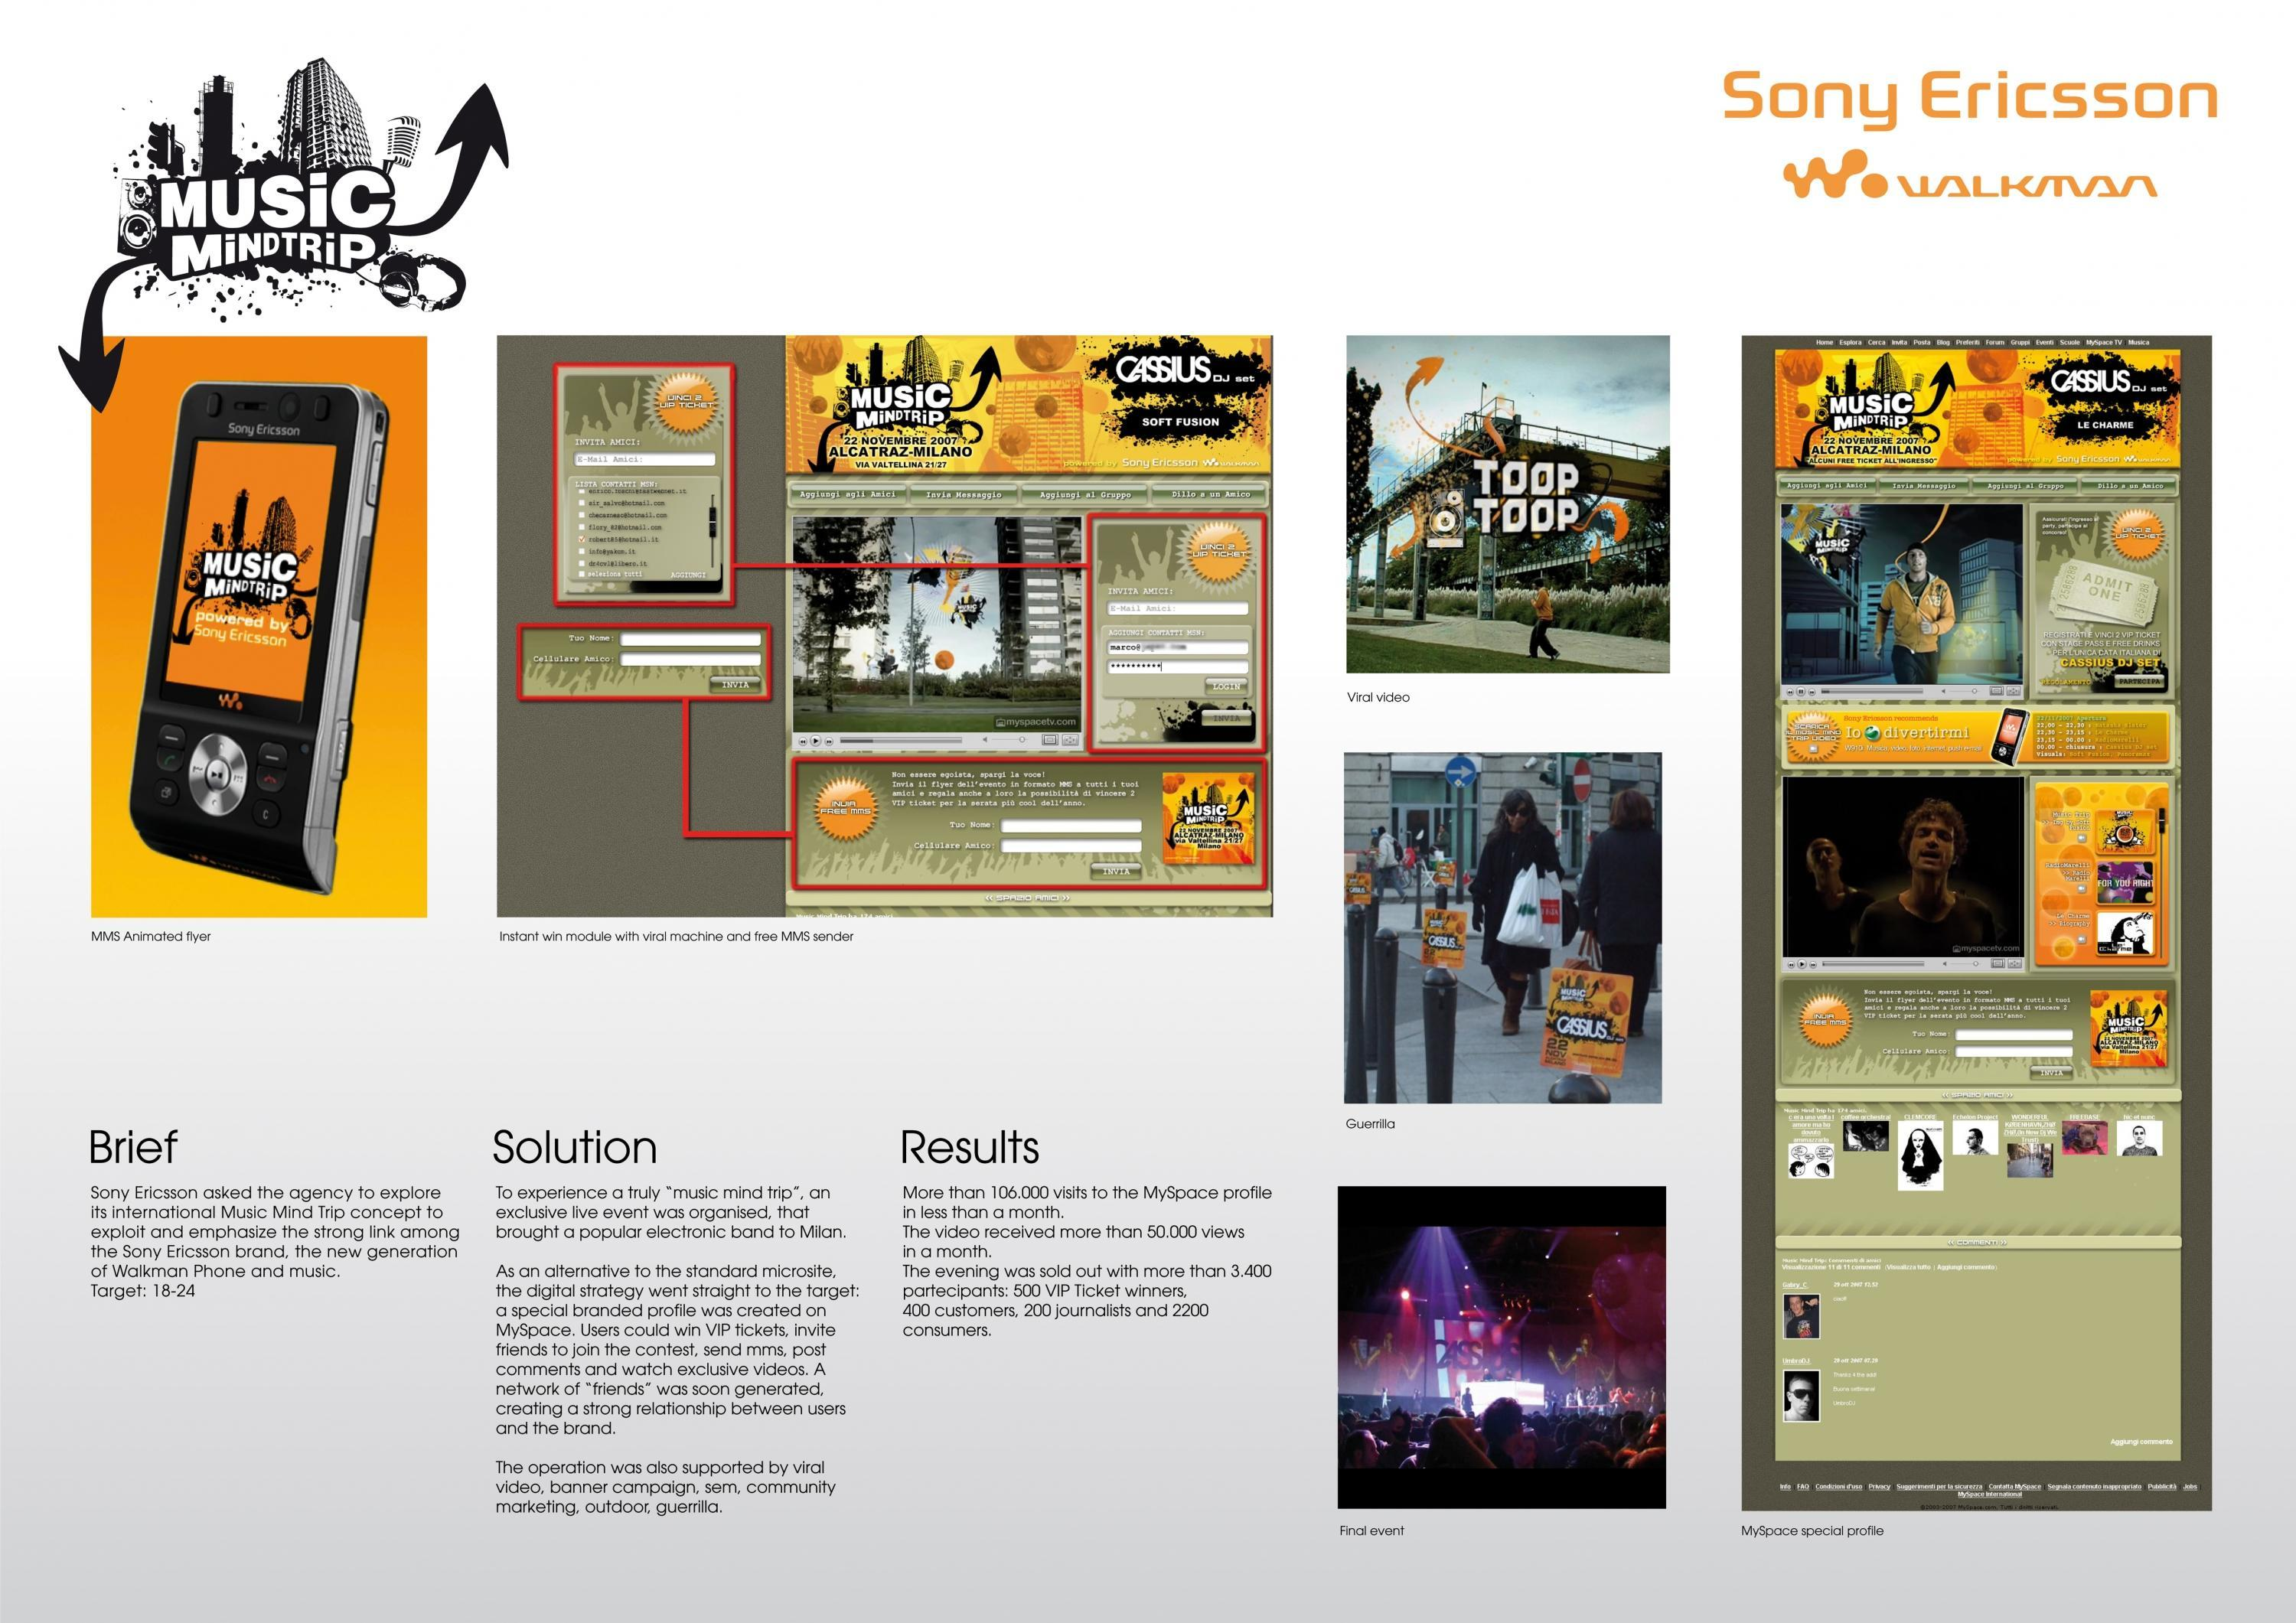 sony ericsson marketing case study Sponsor profile | may 27, 2014 inside sony's experiential marketing strategy consumer electronics giant uses sponsorship to promote sony.